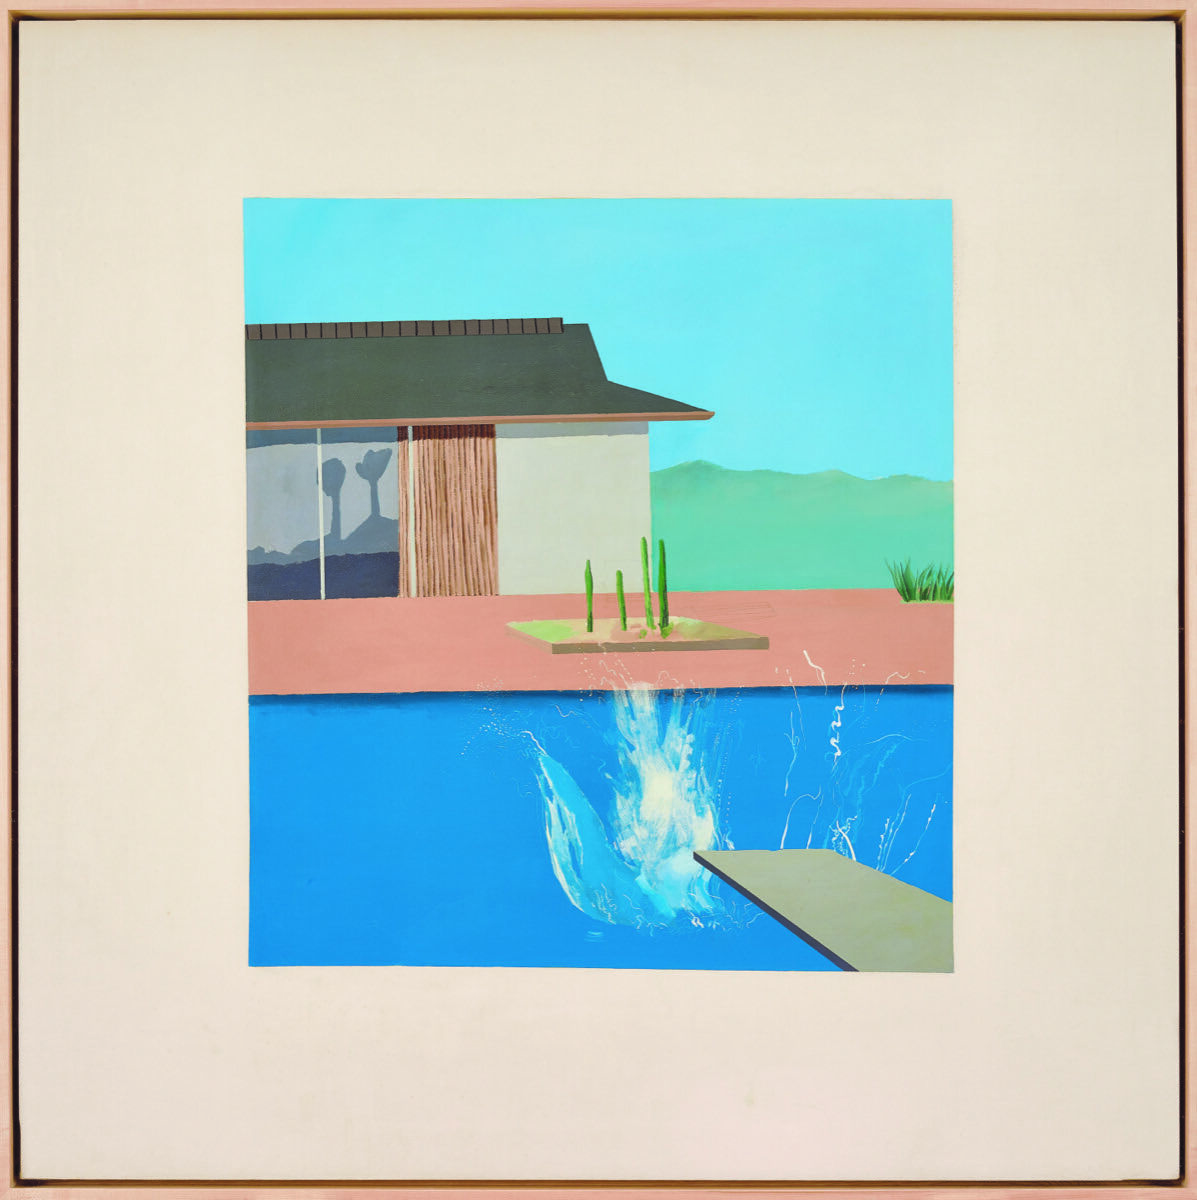 David Hockney, The Splash, 1966. Courtesy of Sotheby's.